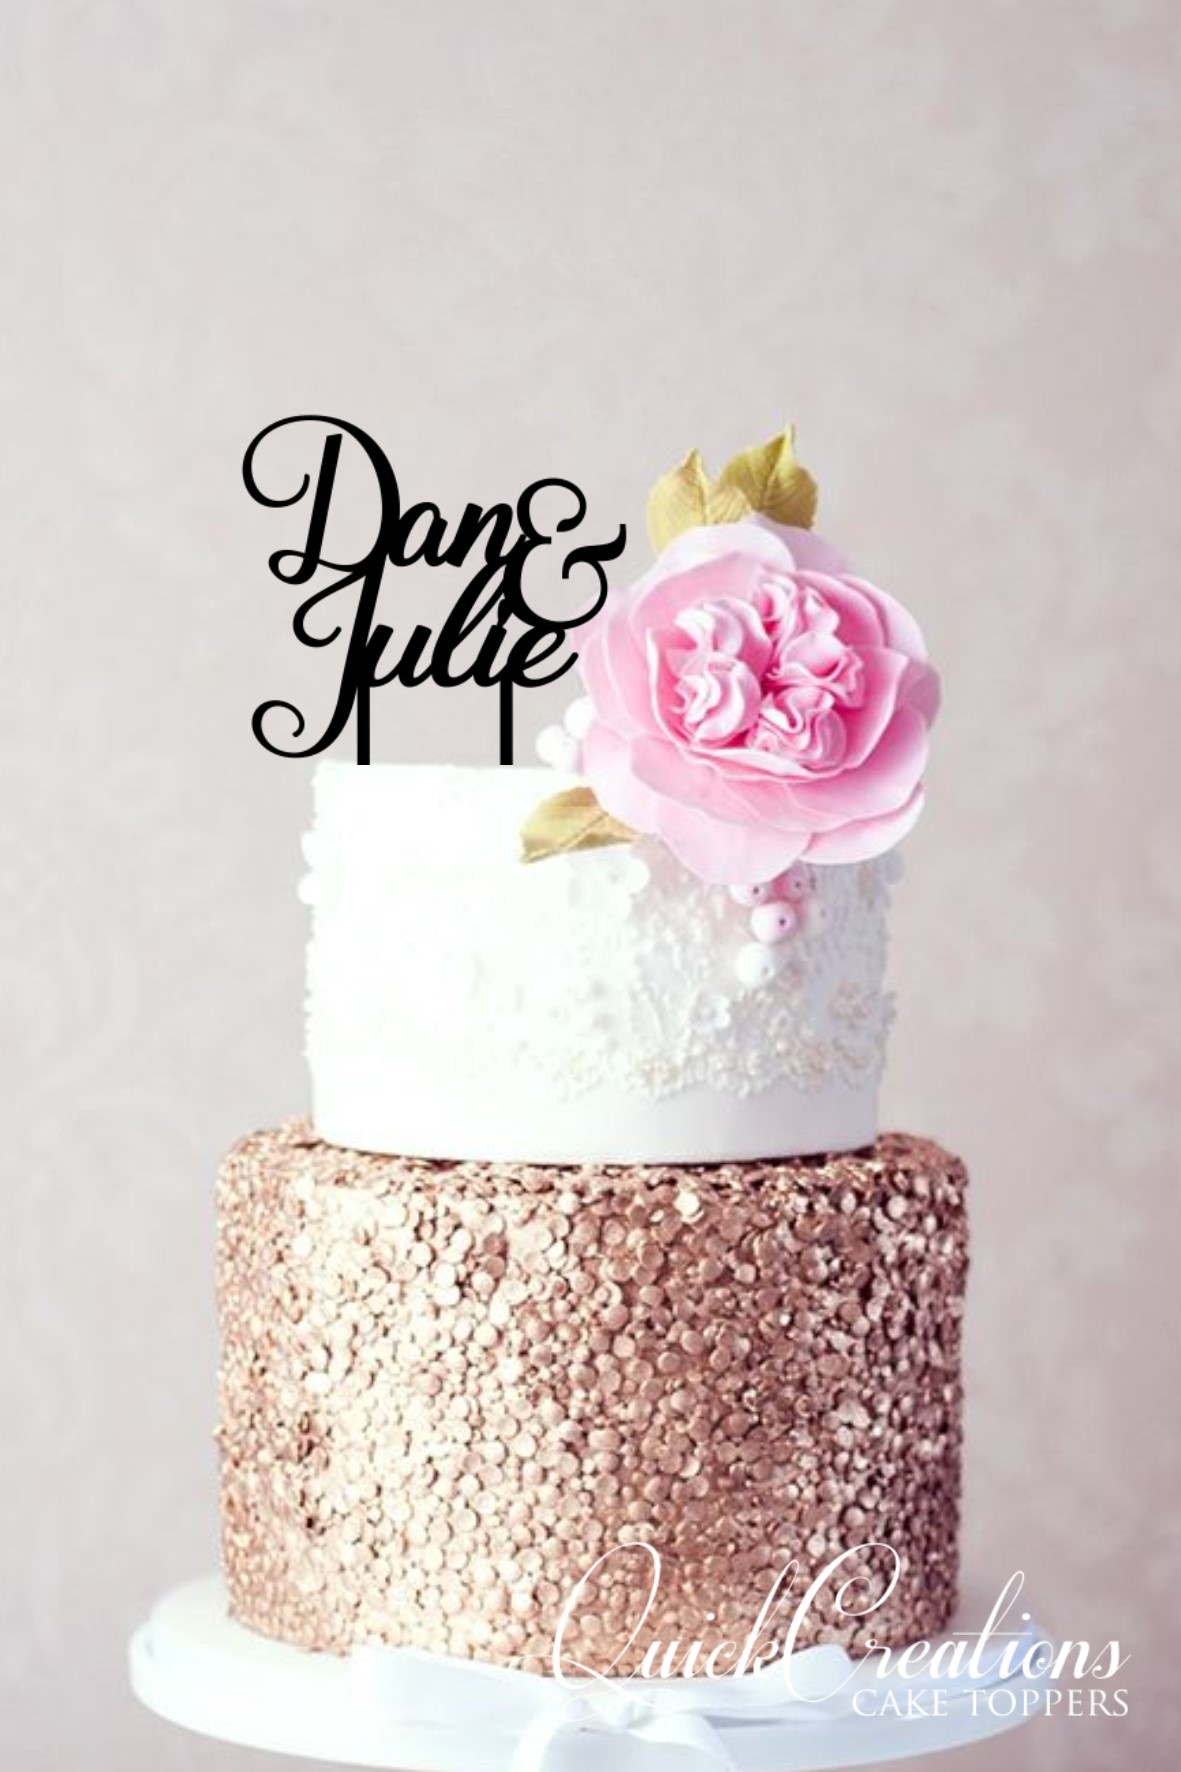 Quick Creations Cake Topper - Dan & Julie